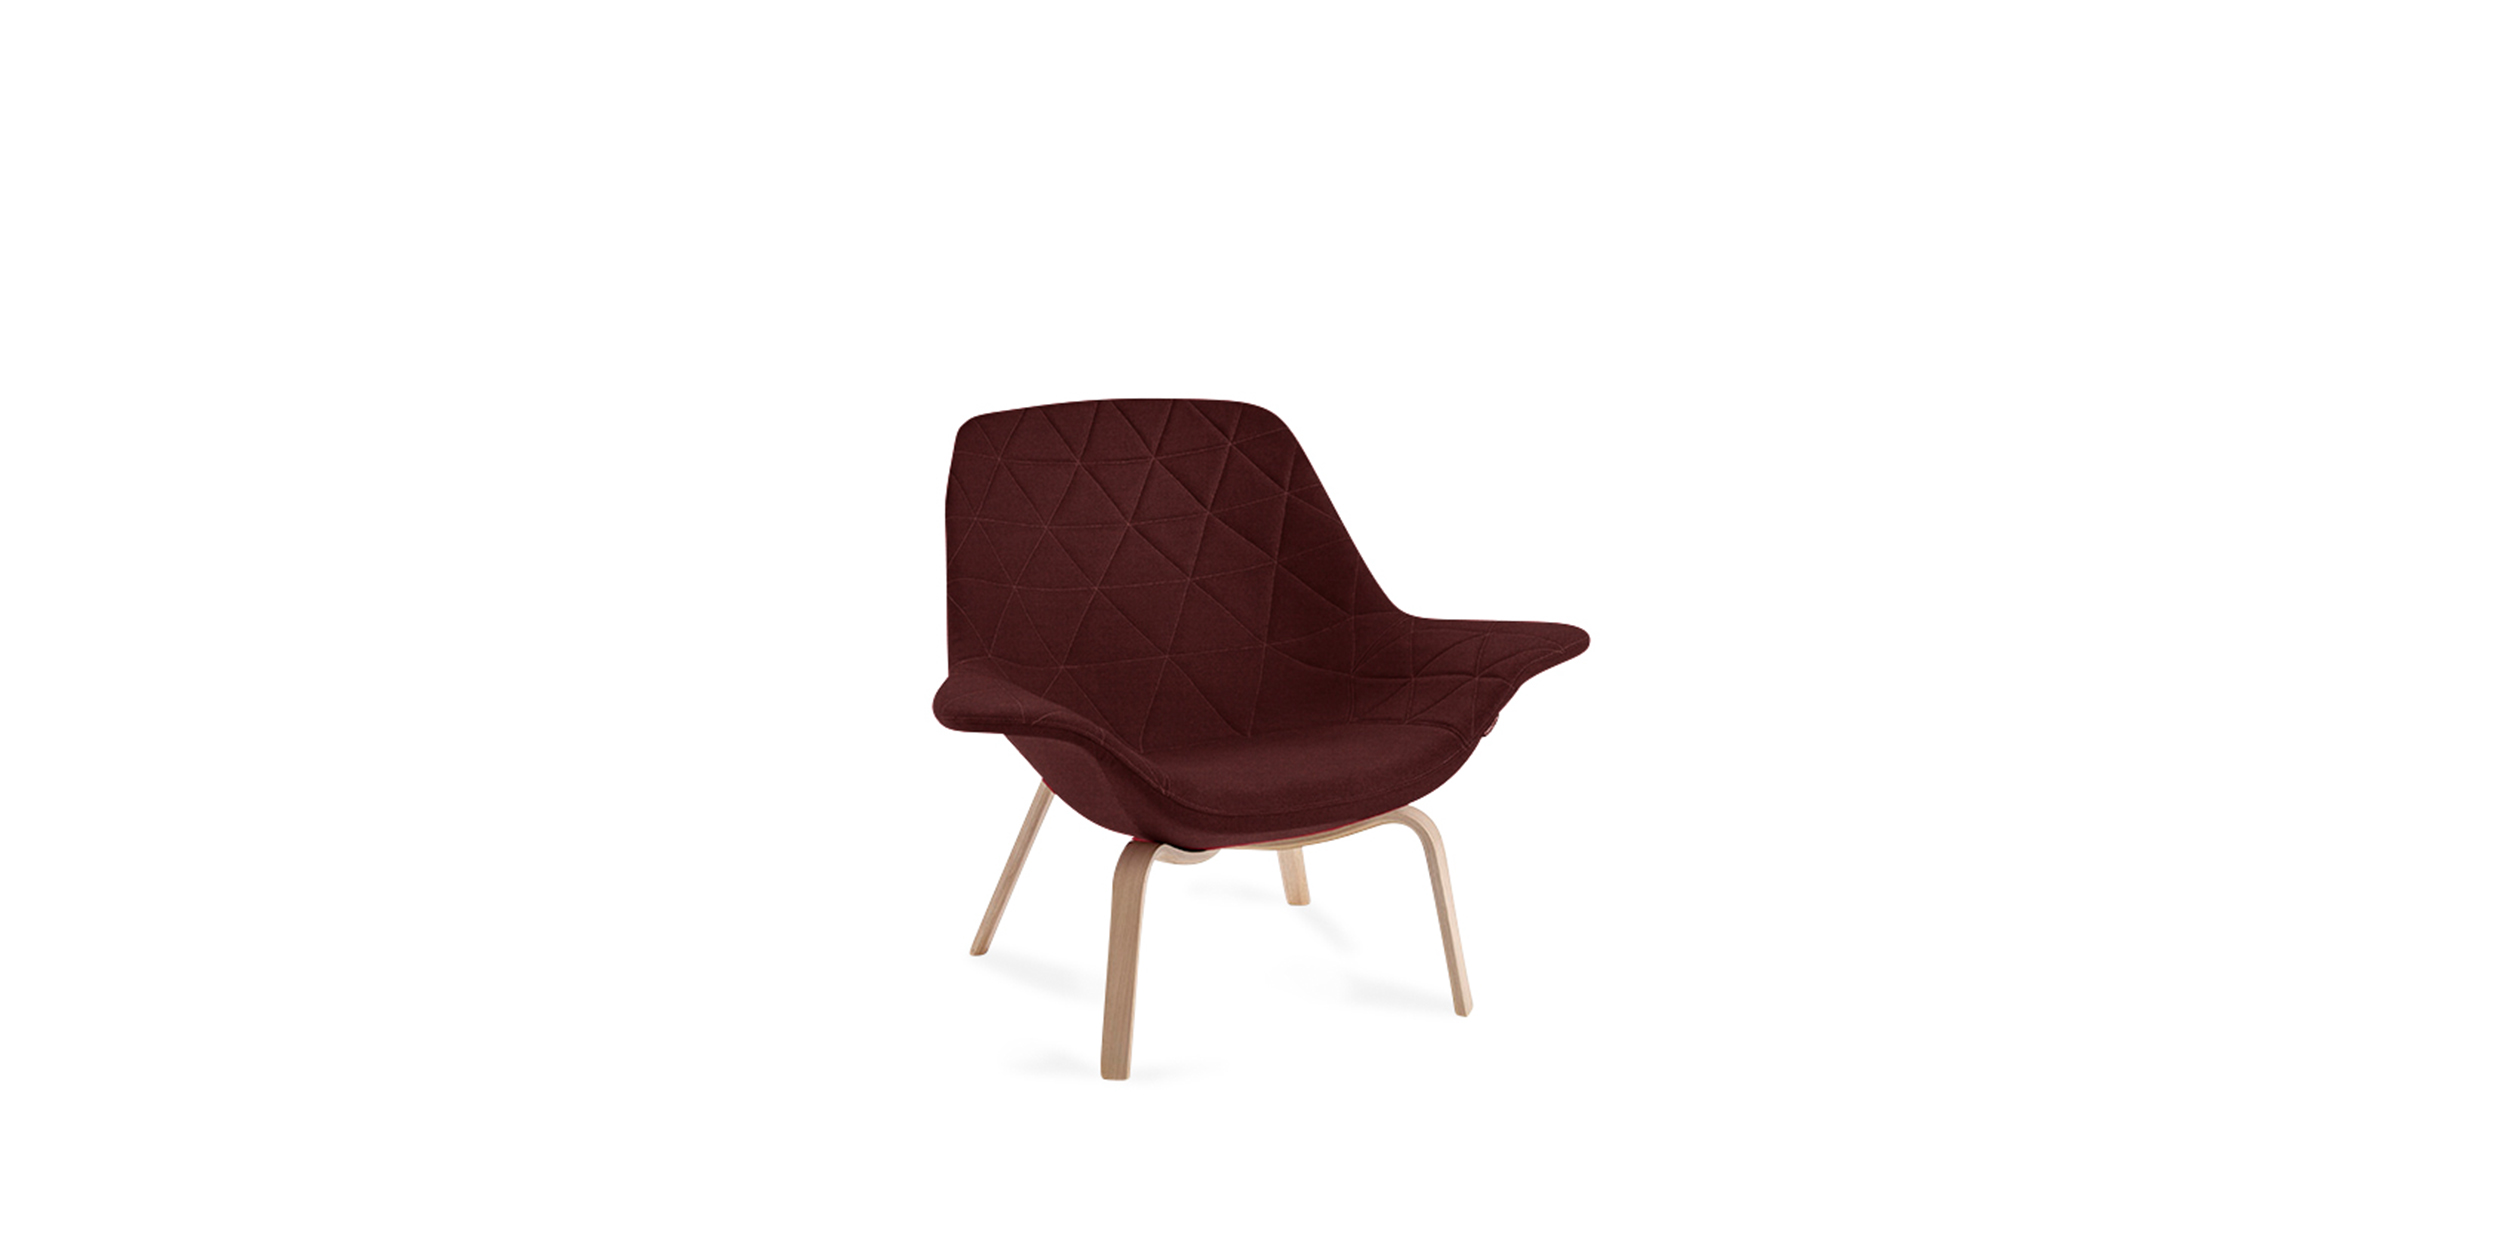 Oyster Wood Low, Easy chair – Design by Michael Sodeau – Offecct